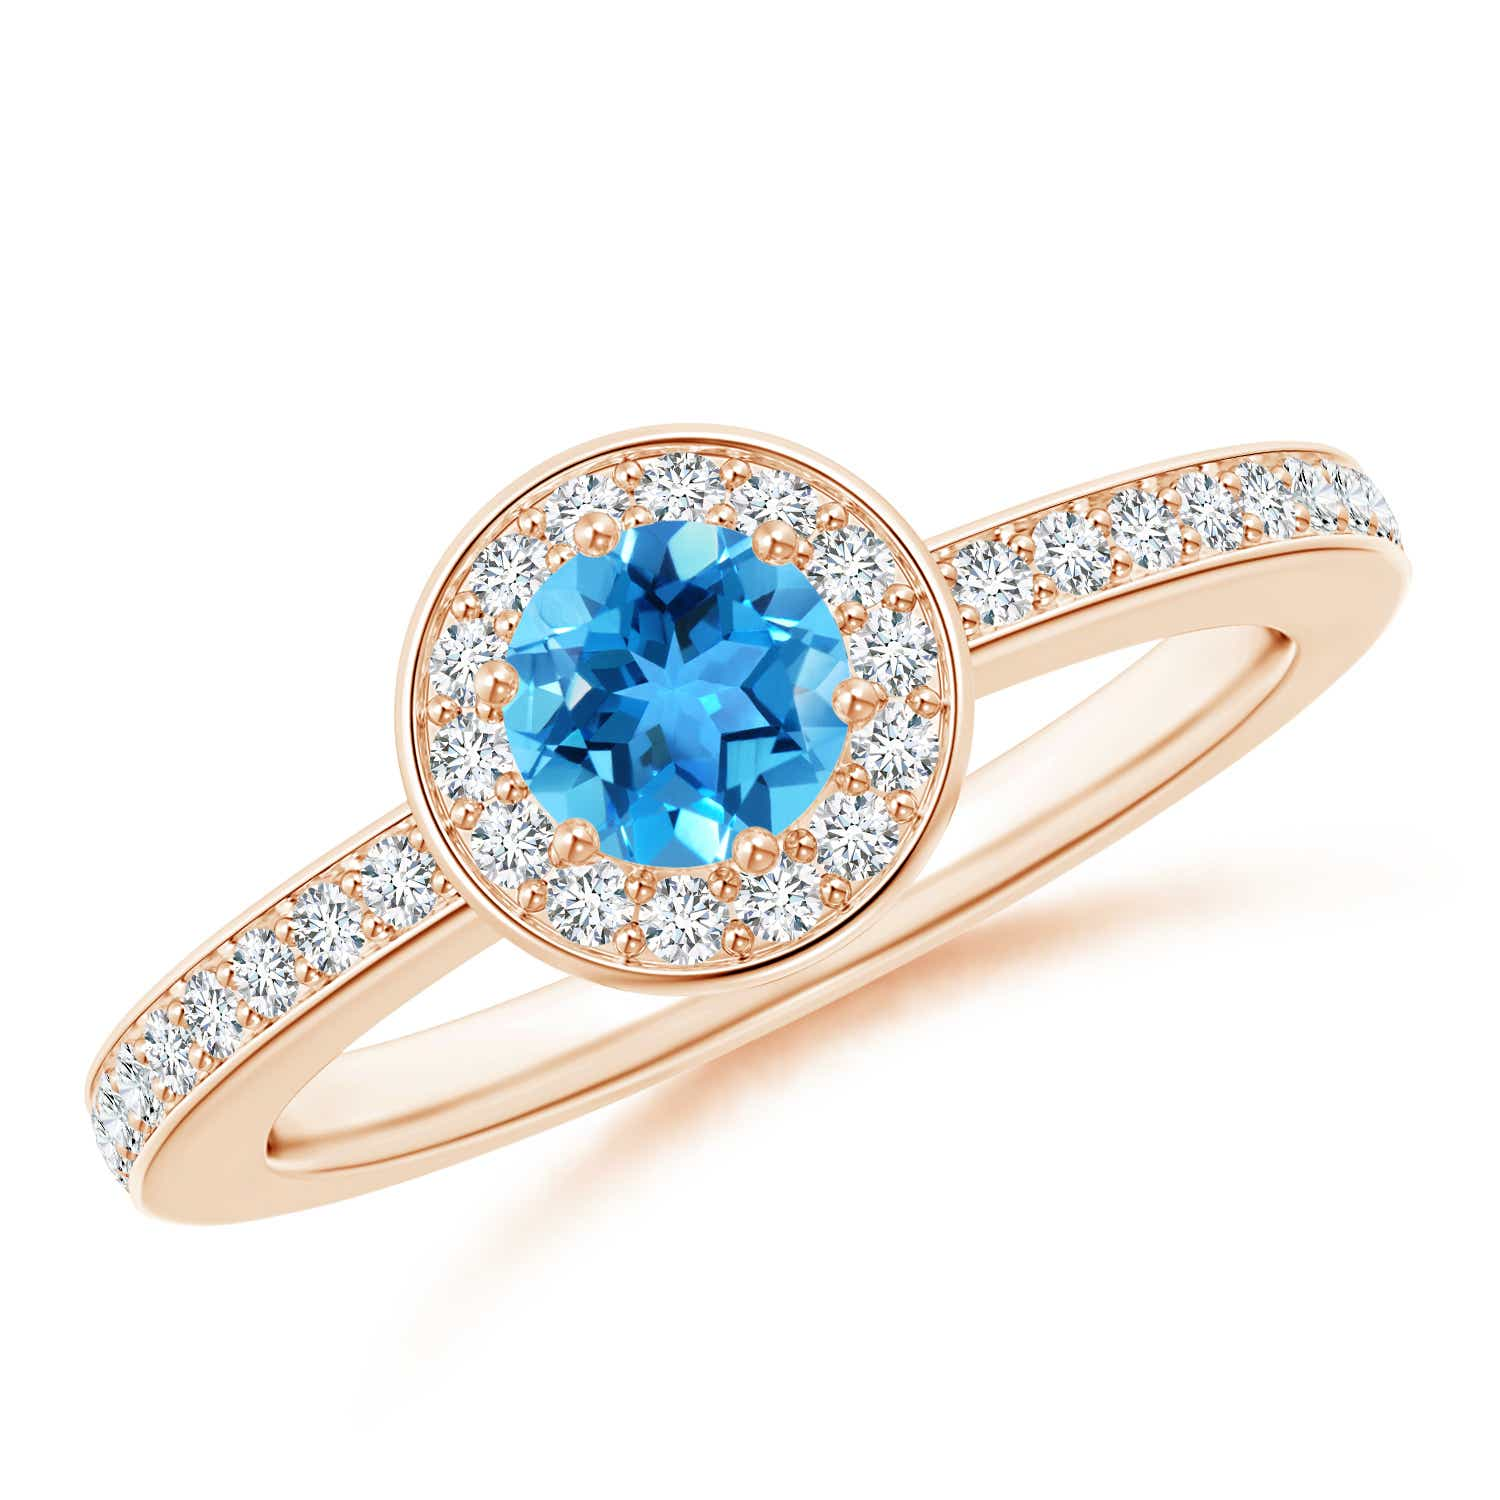 Angara Natural Swiss Blue Topaz Engagement Ring in Yellow Gold rHPSQkxT5